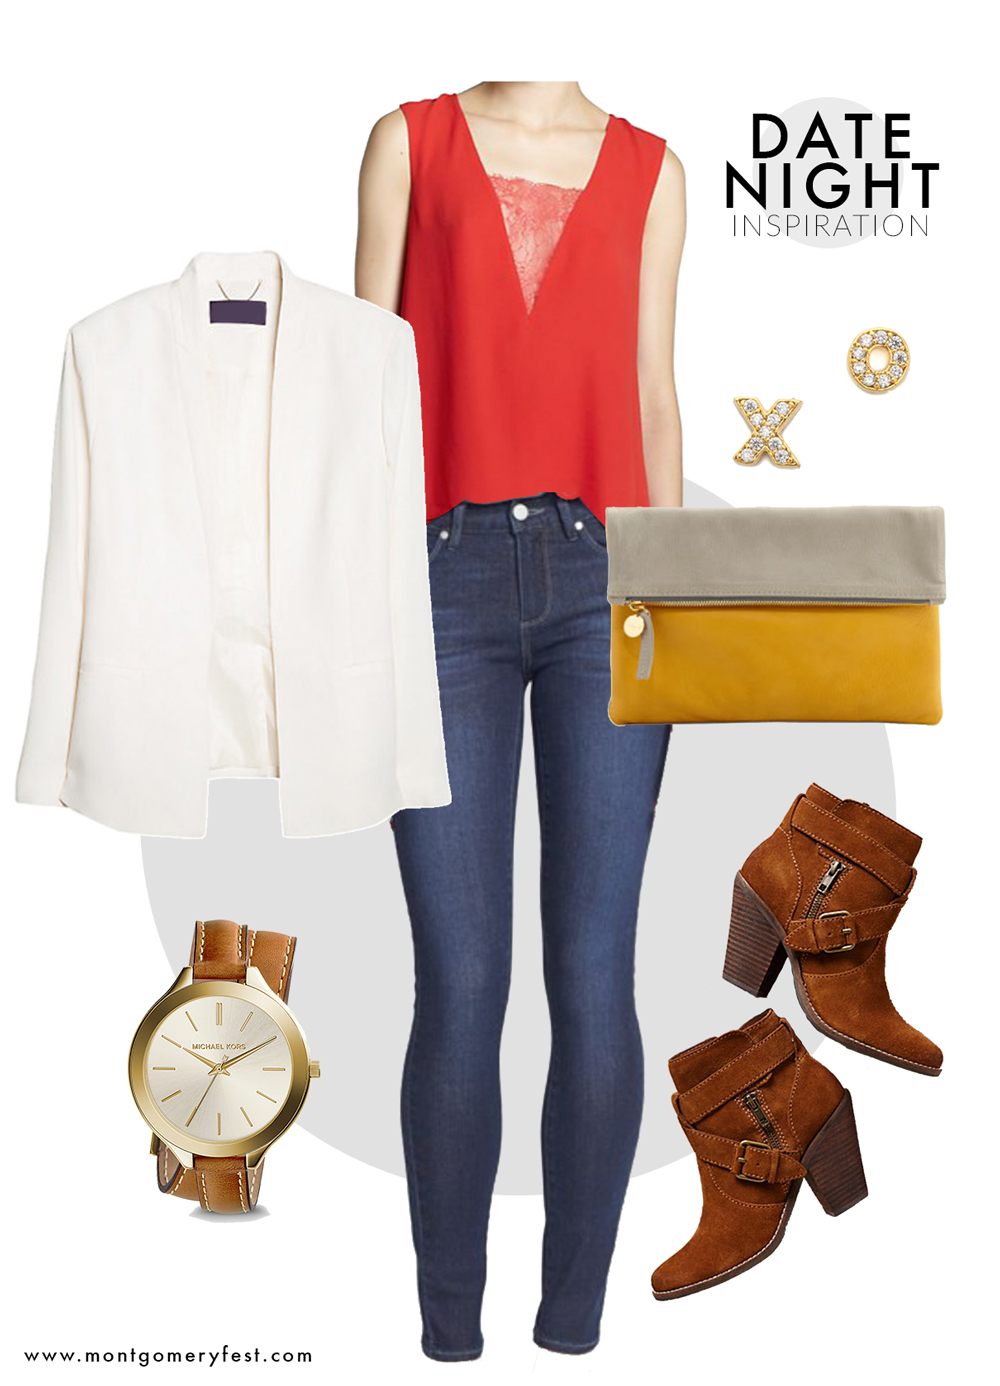 date-night-outfit-inspiration1.jpg